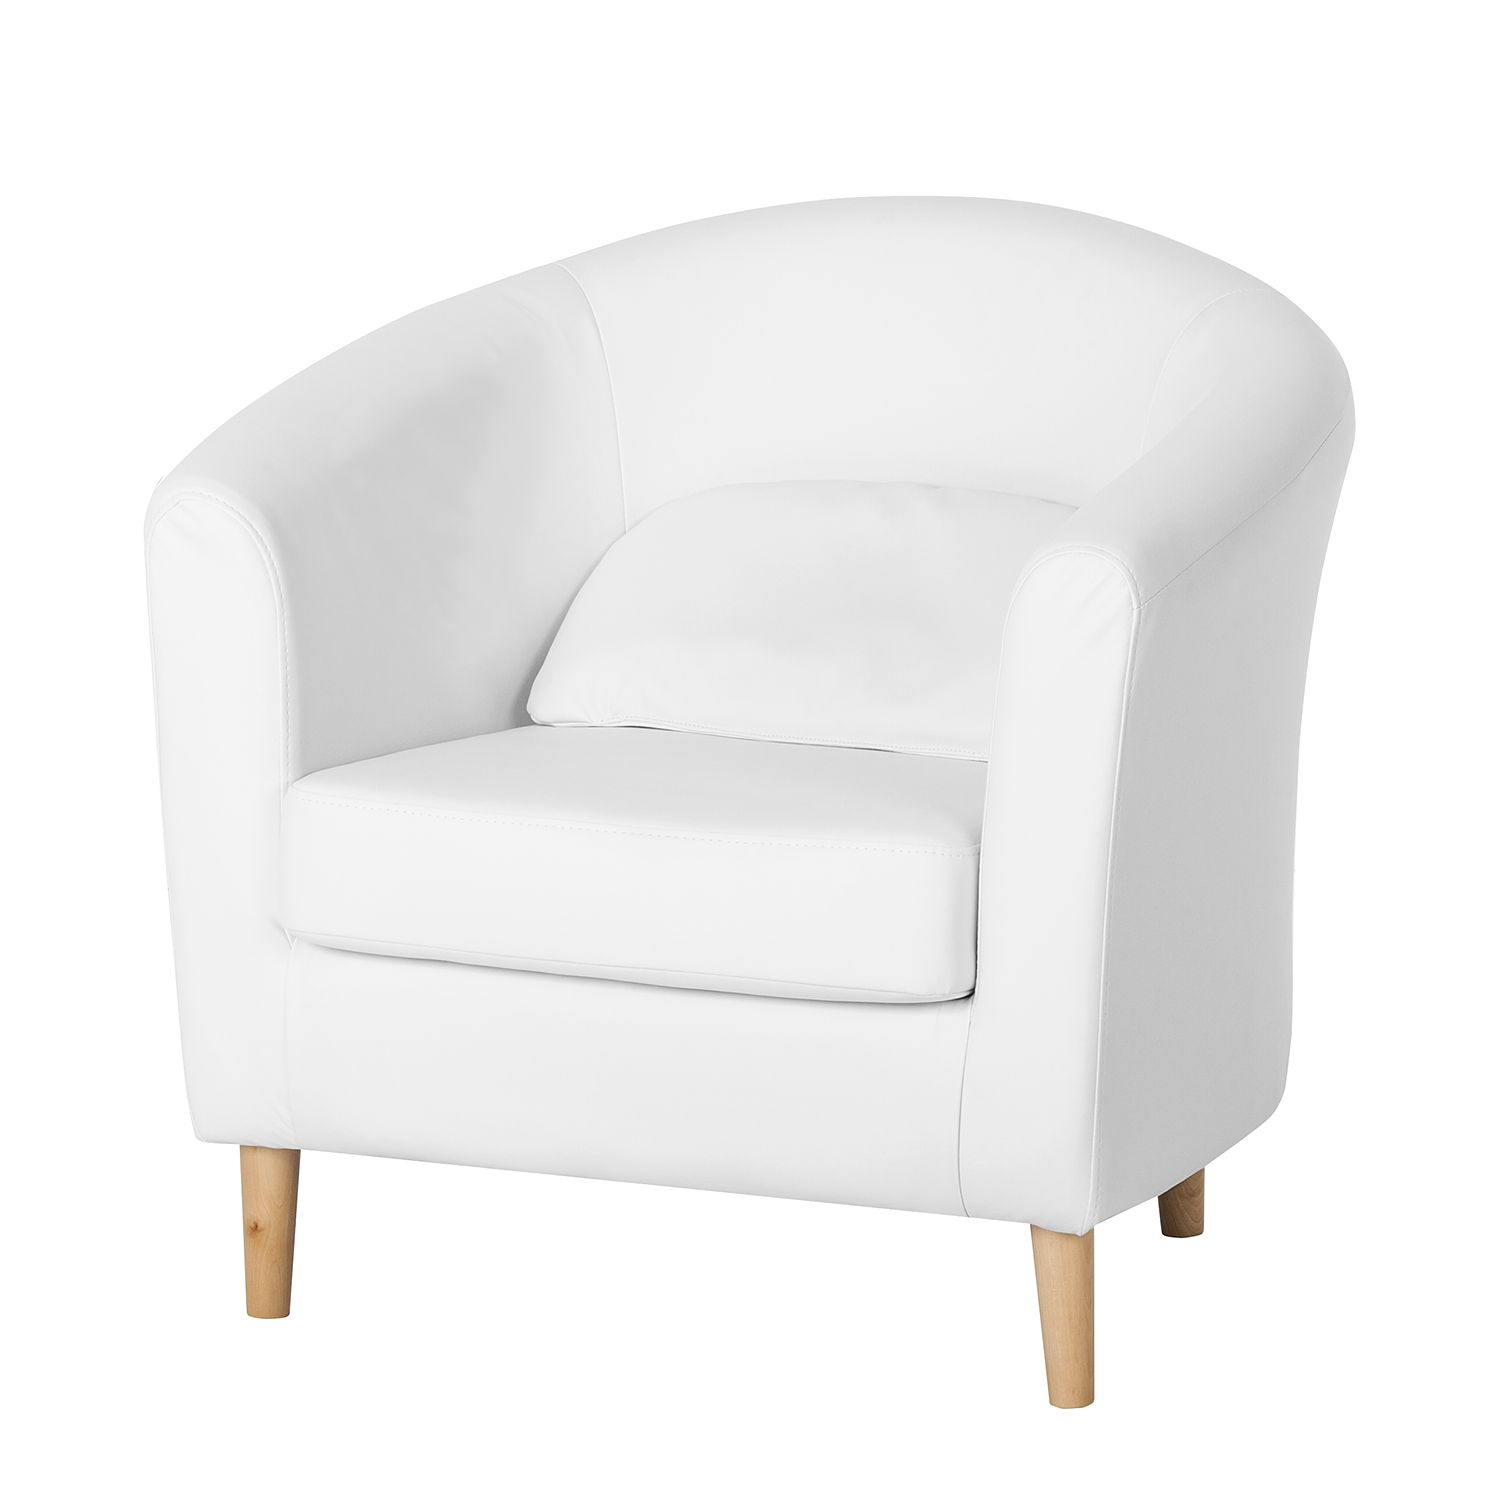 Fauteuil Philipp - Cuir synthétique blanc, mooved